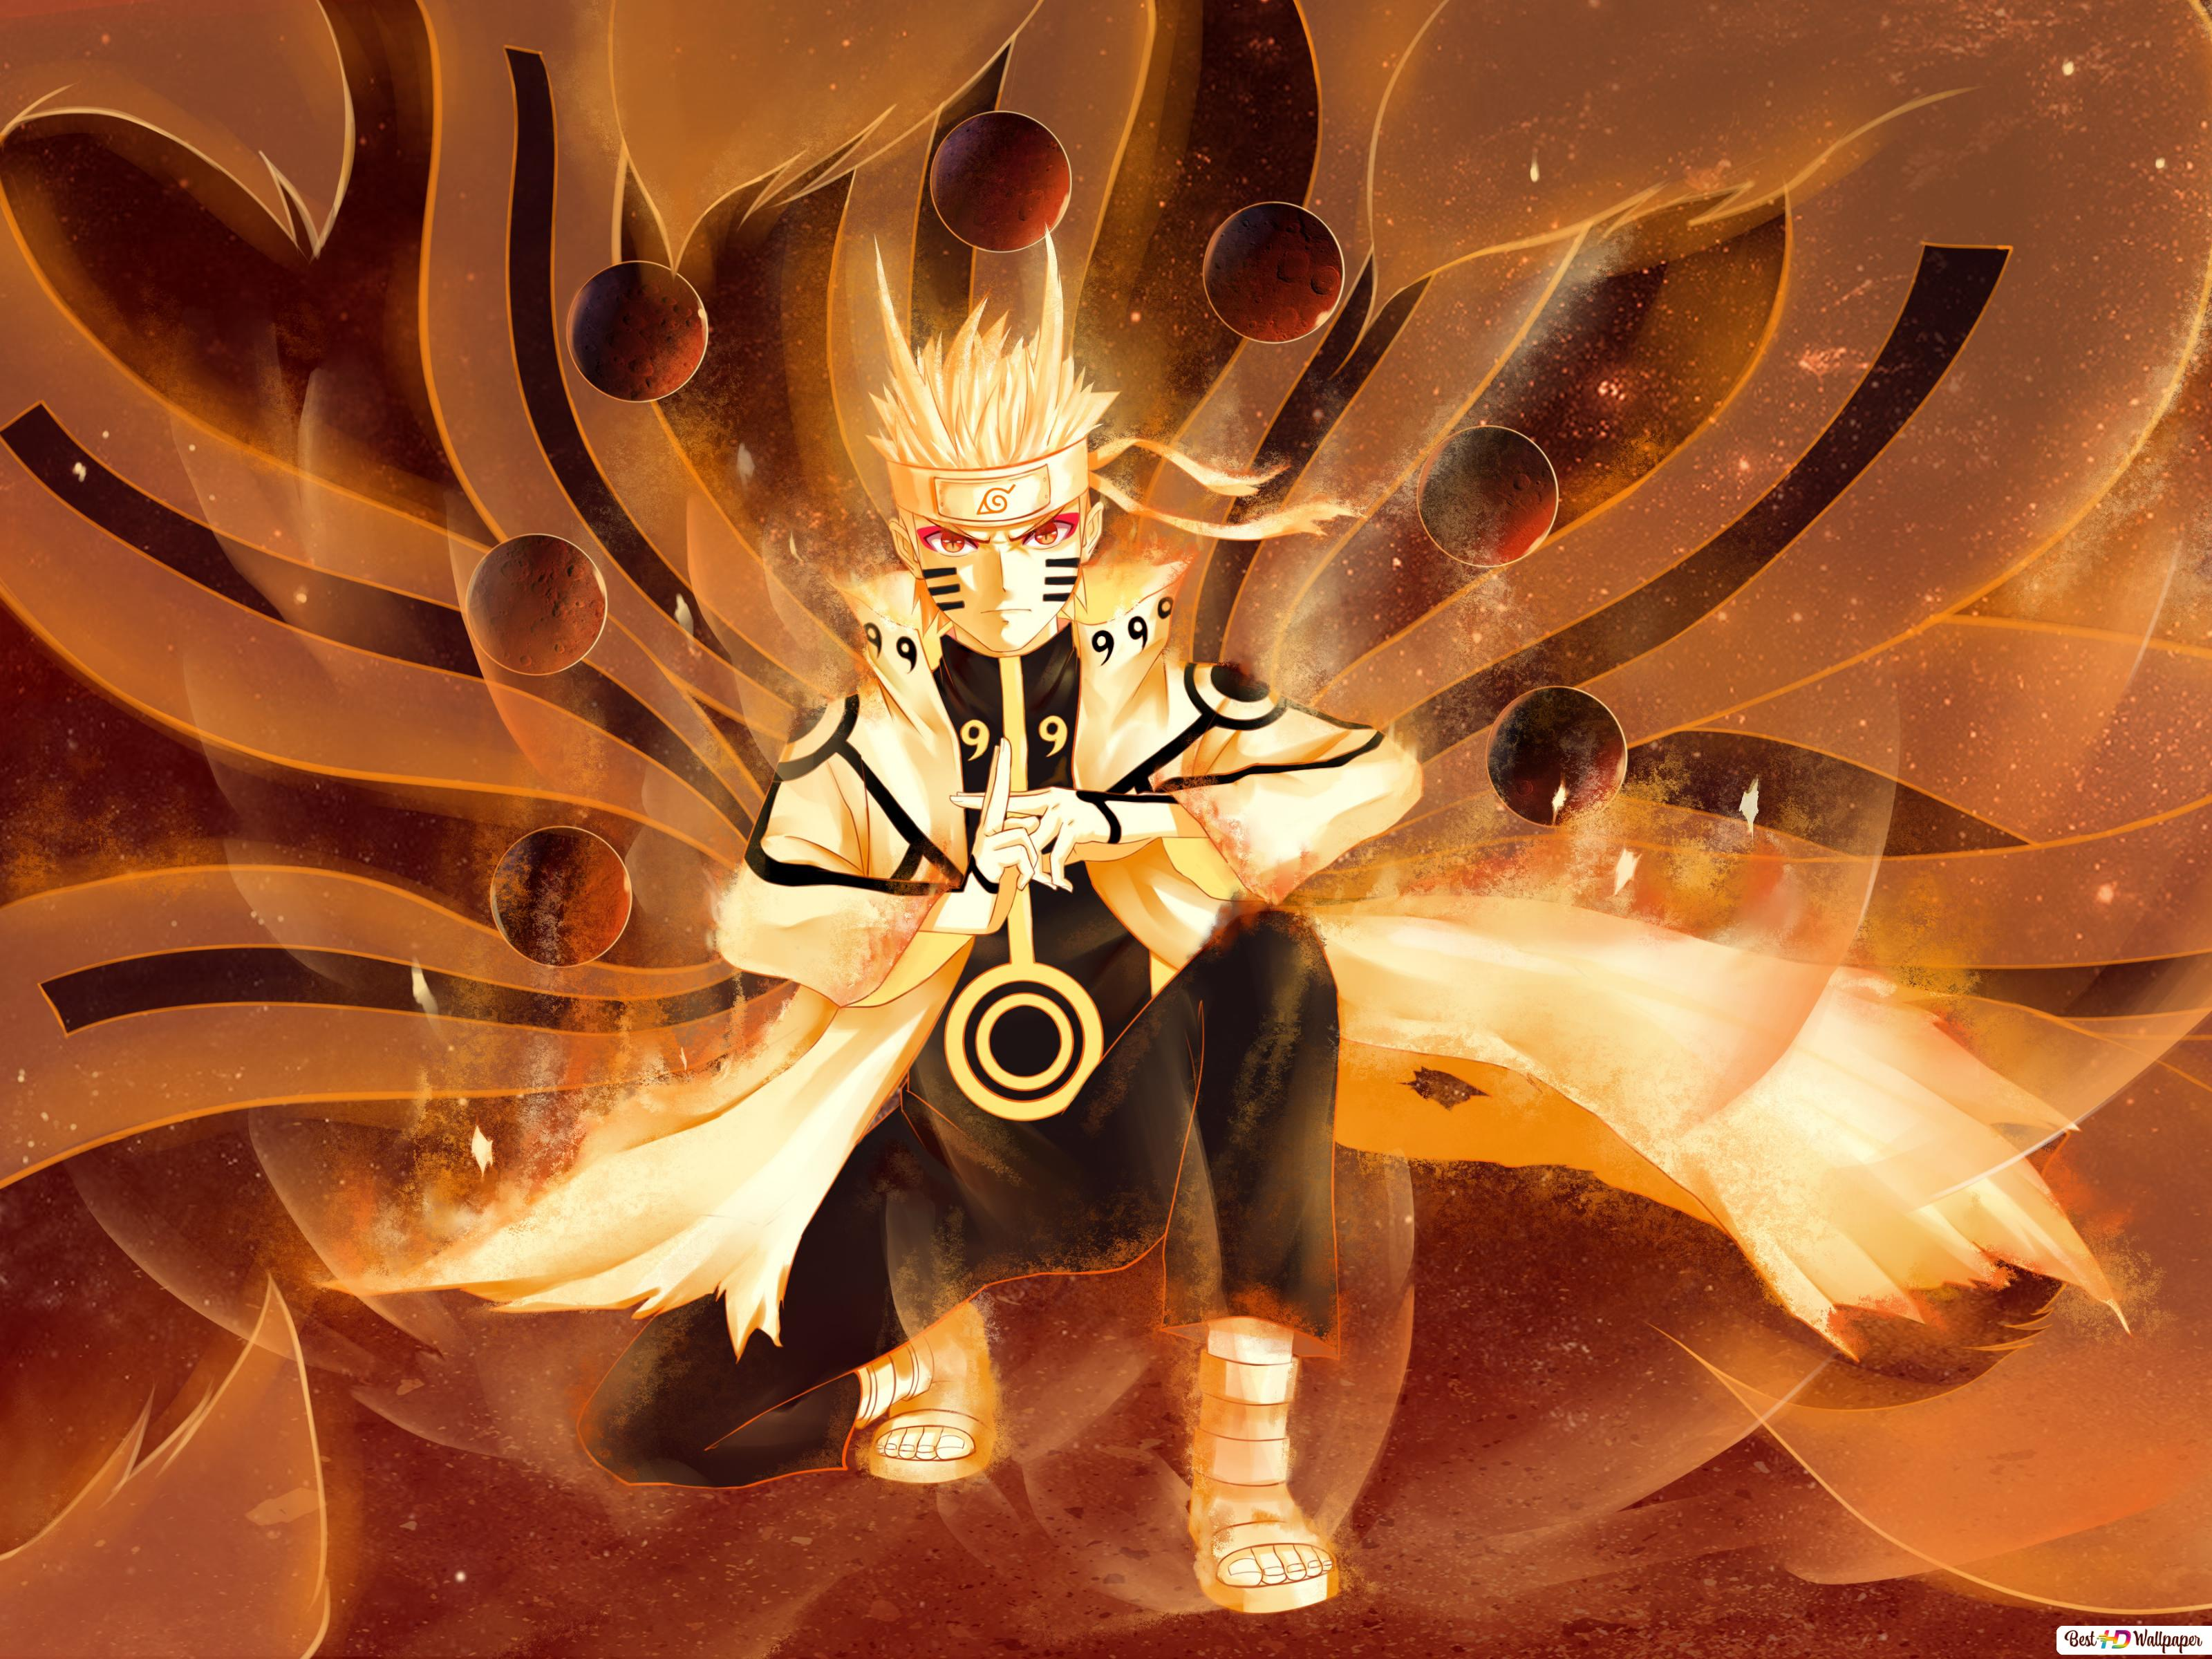 naruto shippuden naruto uzumaki nine tail mode wallpaper 3200x2400 13630 29